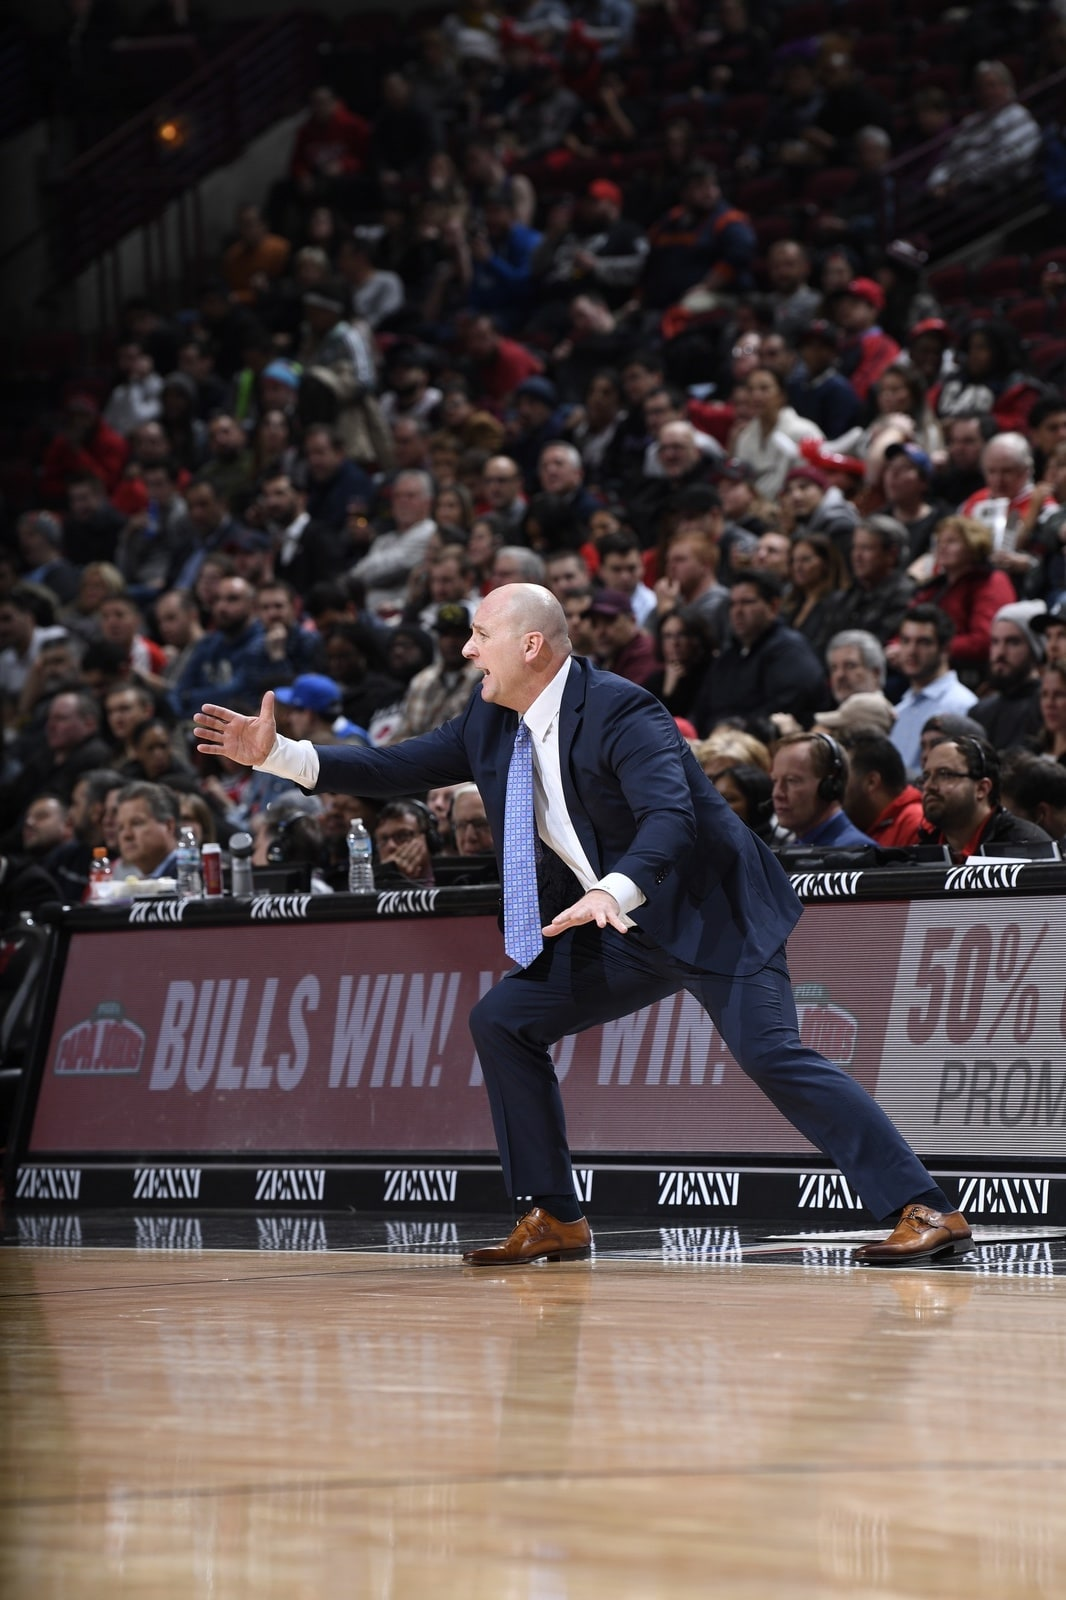 Jim Boylen gesturing on the sidelines during a game